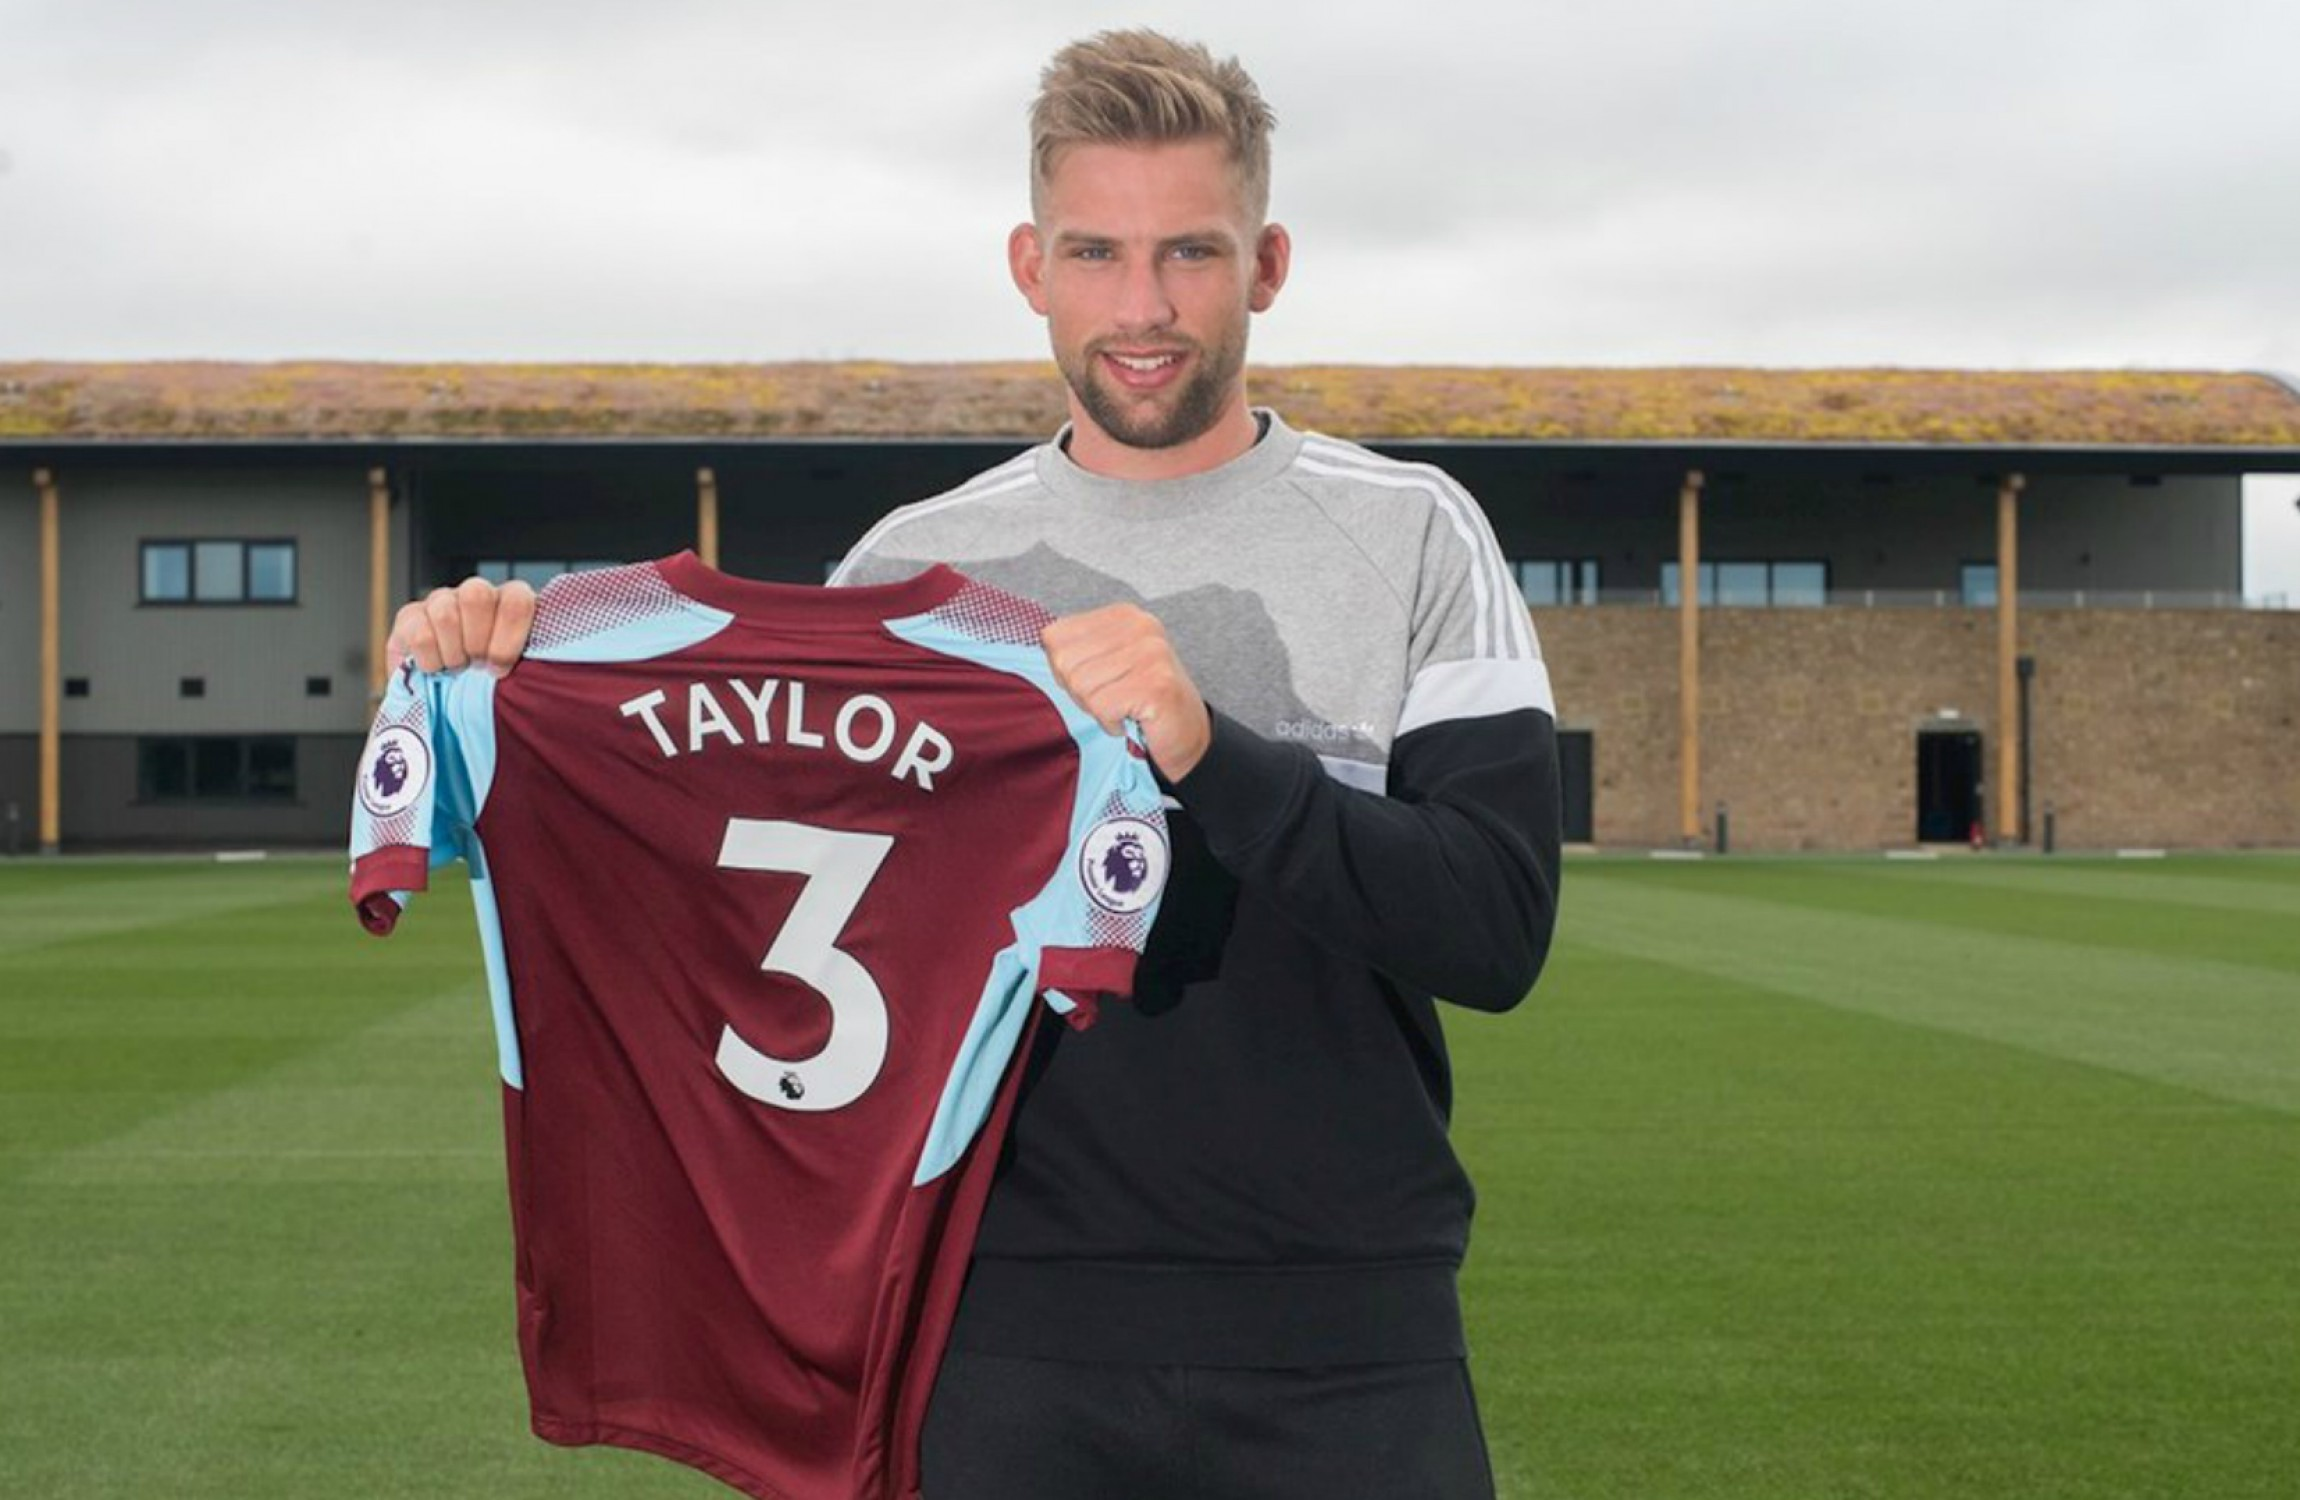 Burnley sign left-back Charlie Taylor from Leeds United